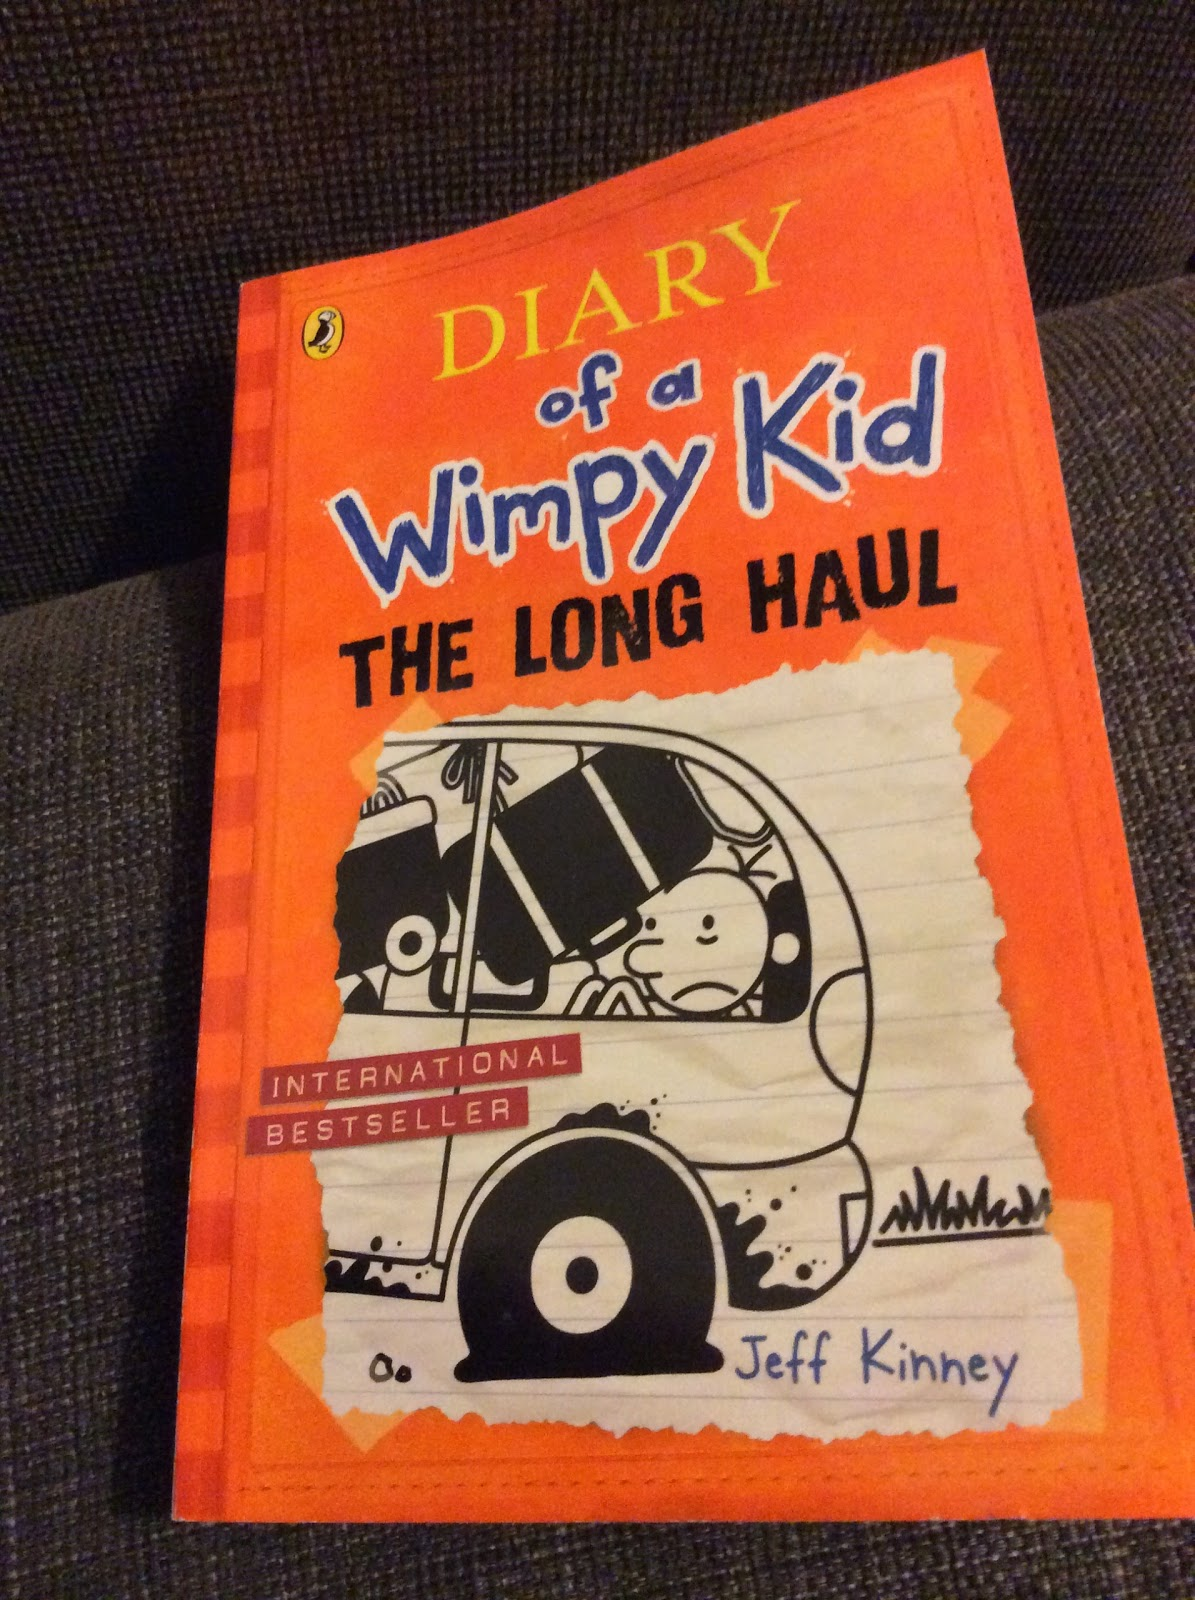 What fred read reviews and celebration of books for young children diary of a wimpy kid the long haul solutioingenieria Choice Image